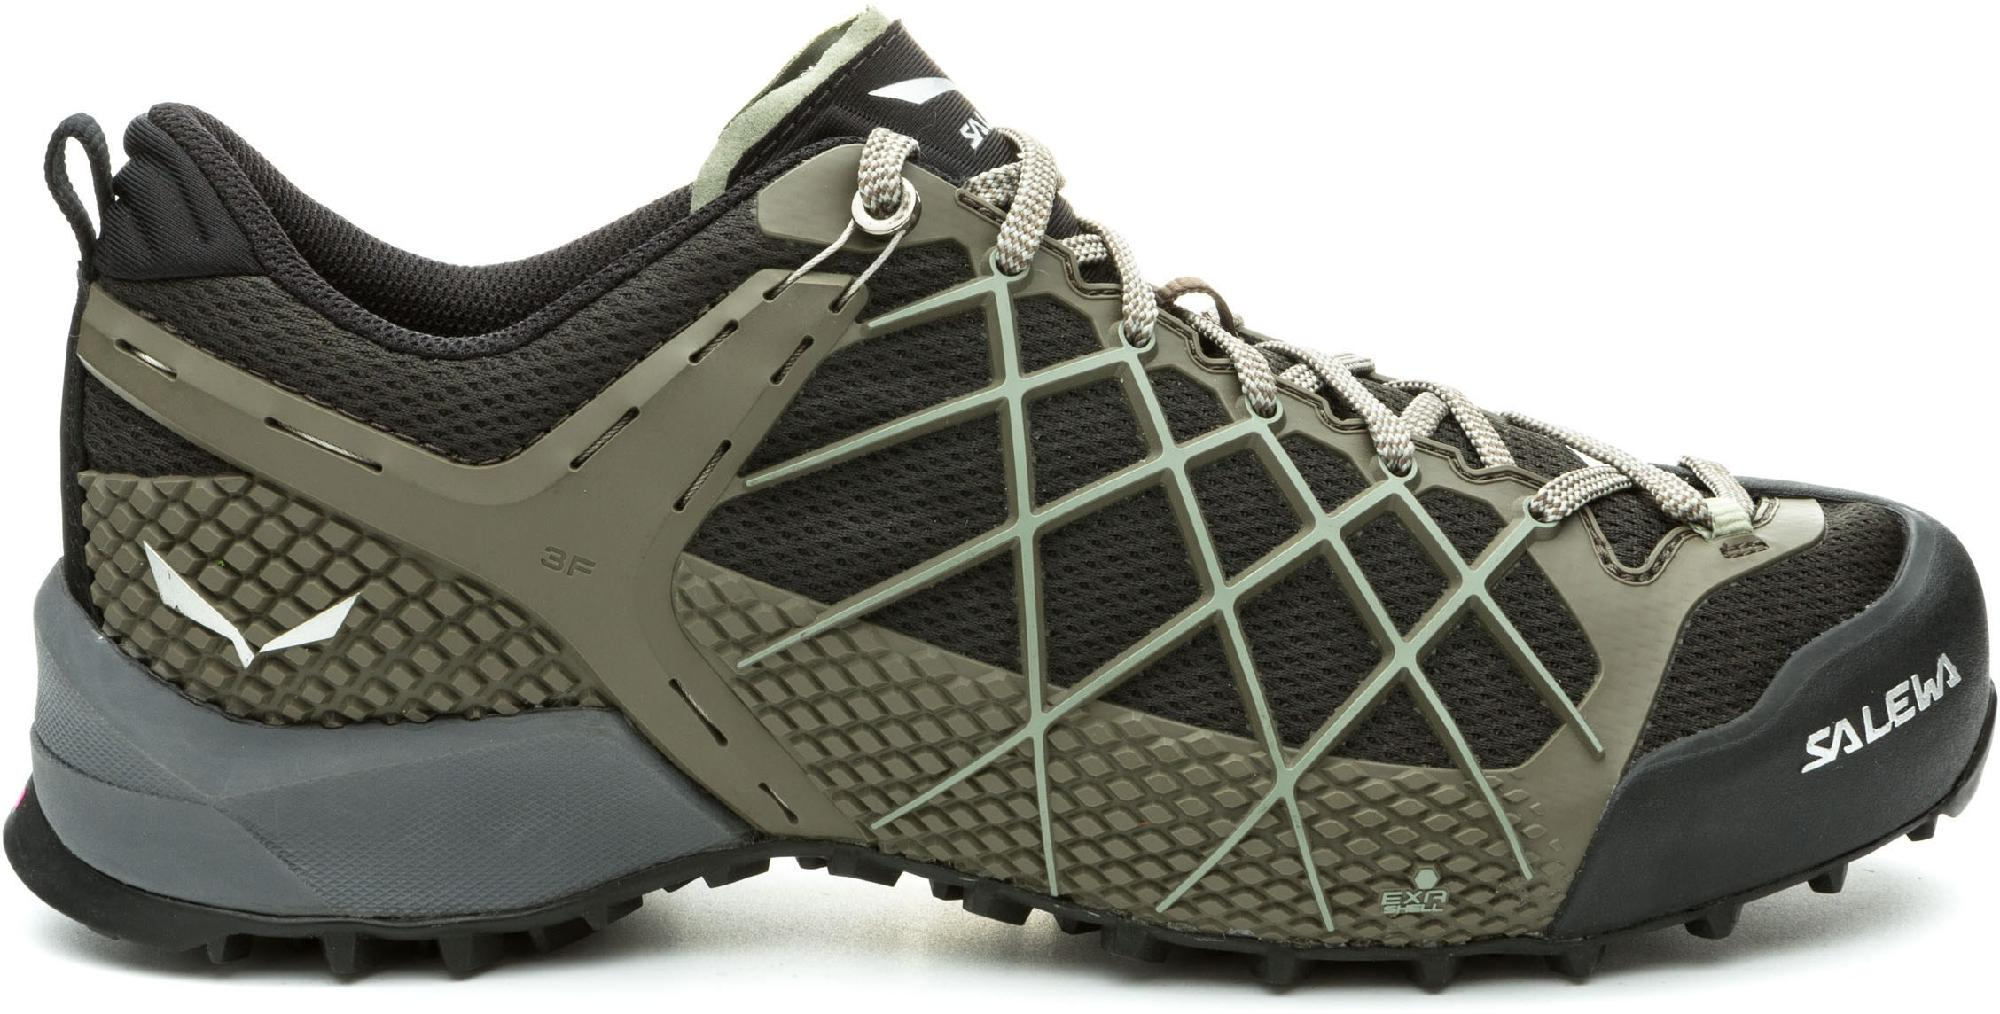 Salewa Wildfire Approach Shoes - Men's